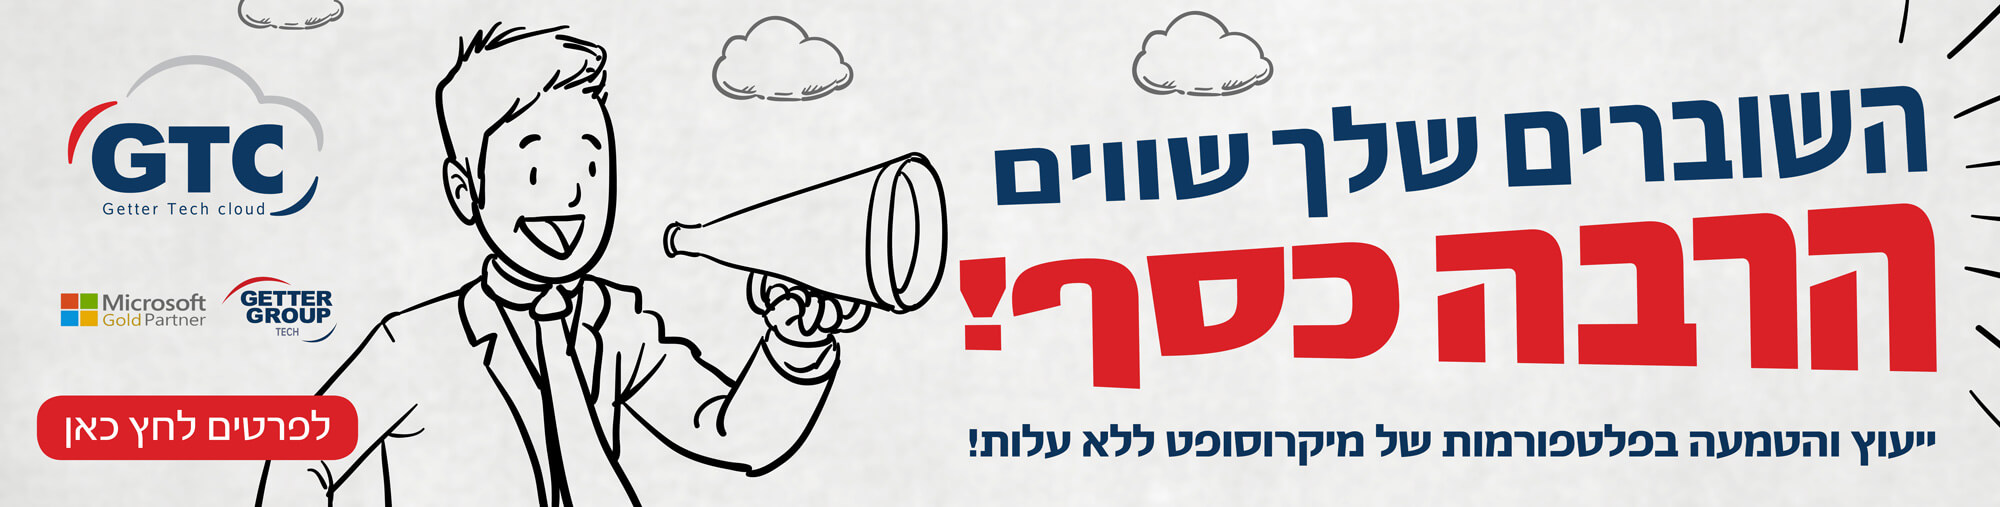 21 GTC 9 banner 2000x507, תוכנת adobe creative cloud, GTC